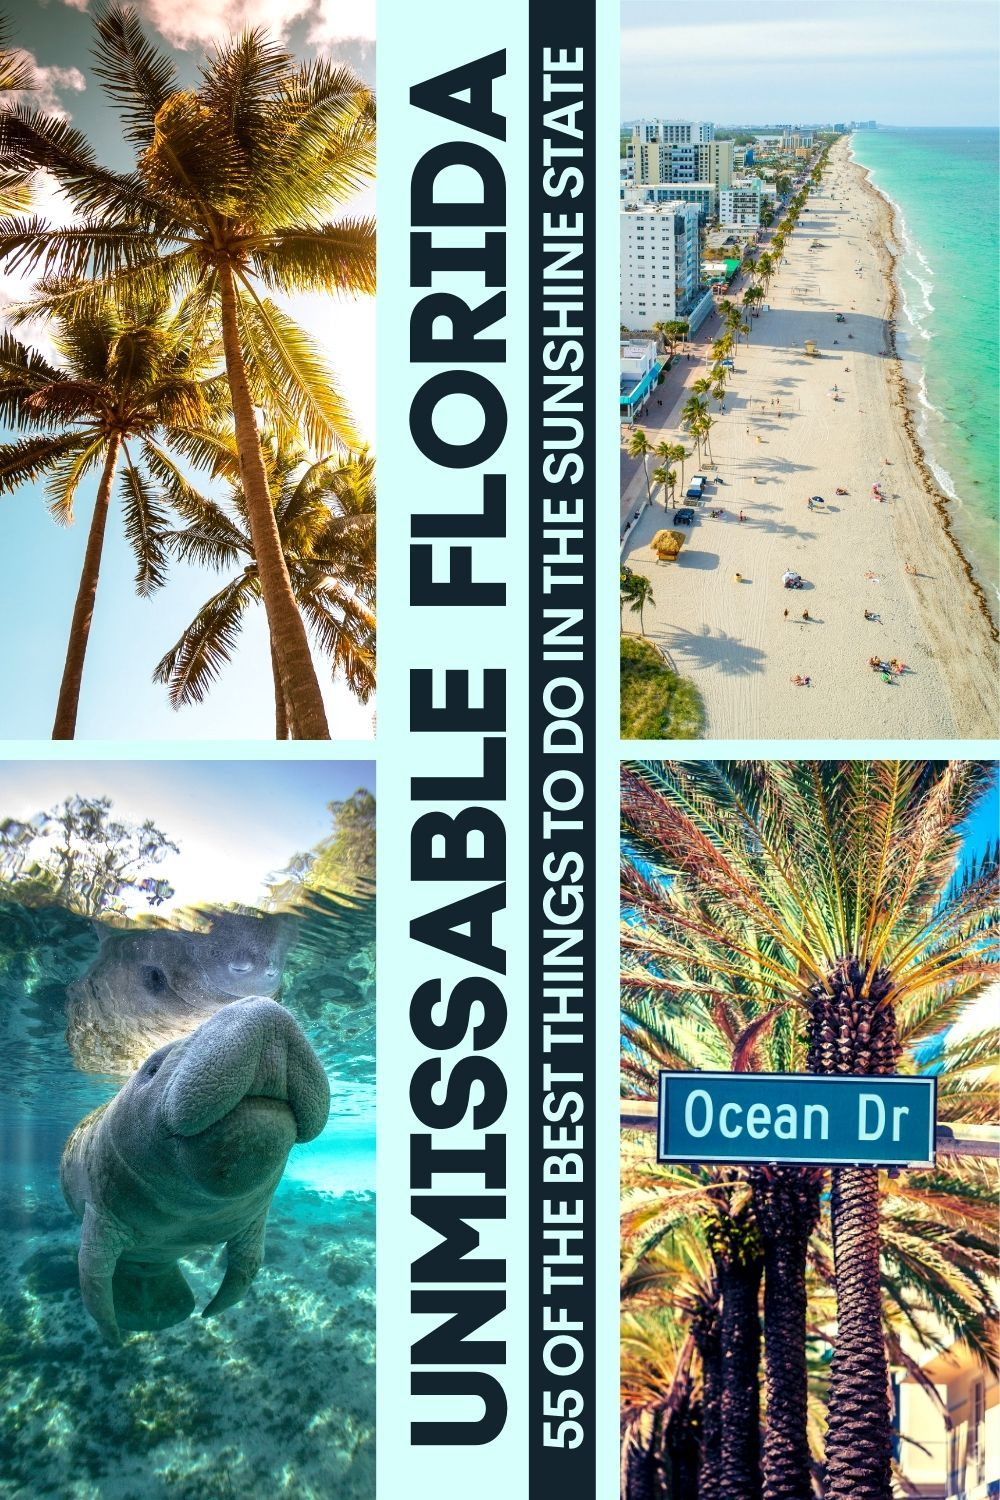 The Best Things To Do In Florida 55 Places To Visit In The Sunshine State Florida Travel Mexico Travel Usa Travel Guide